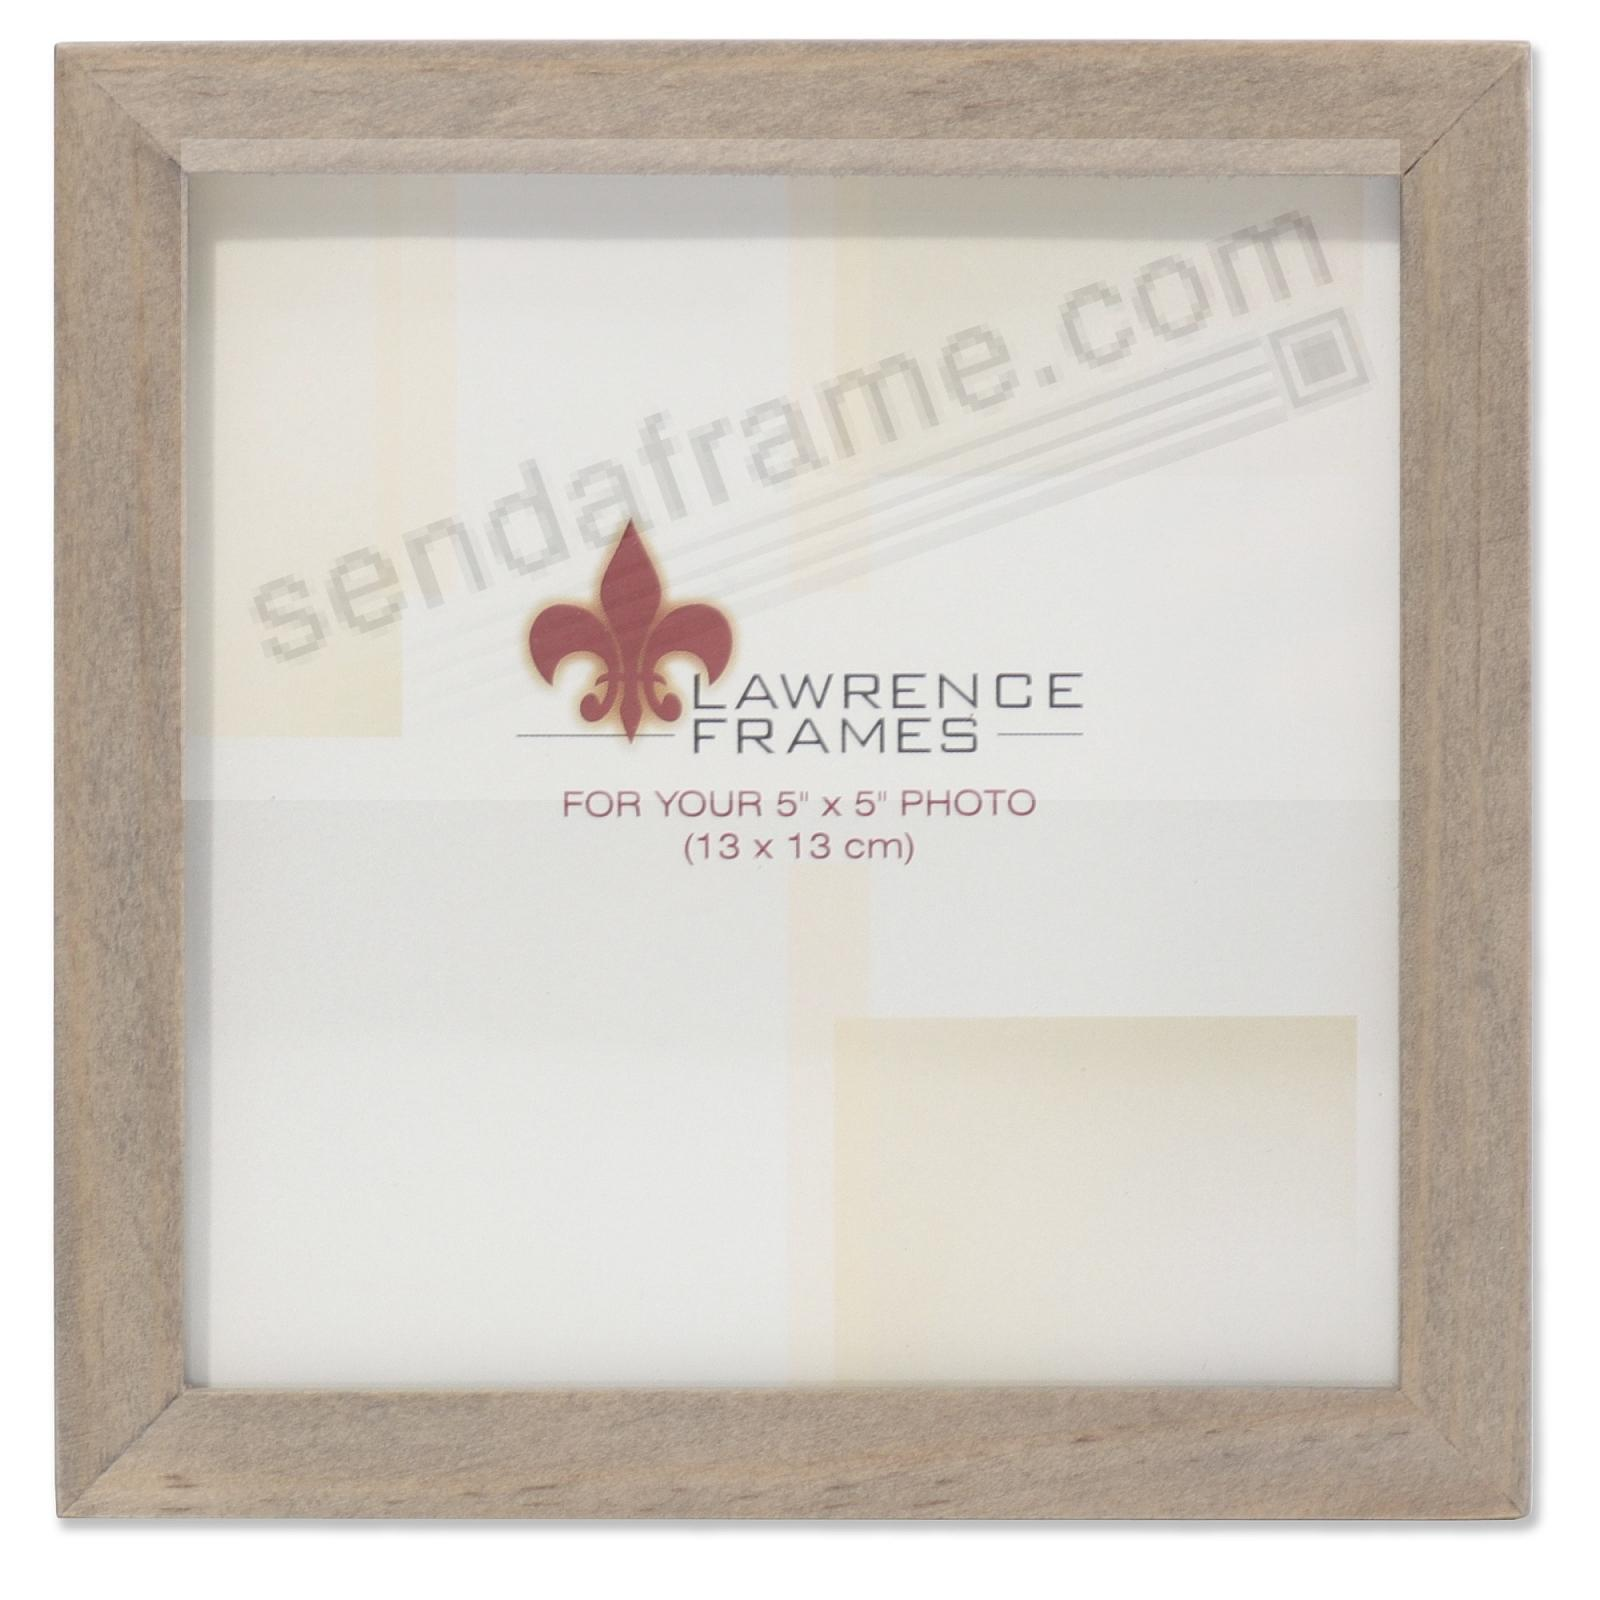 SQUARE CORNER Gray Stain 5x5 frame by Lawrence Frames®